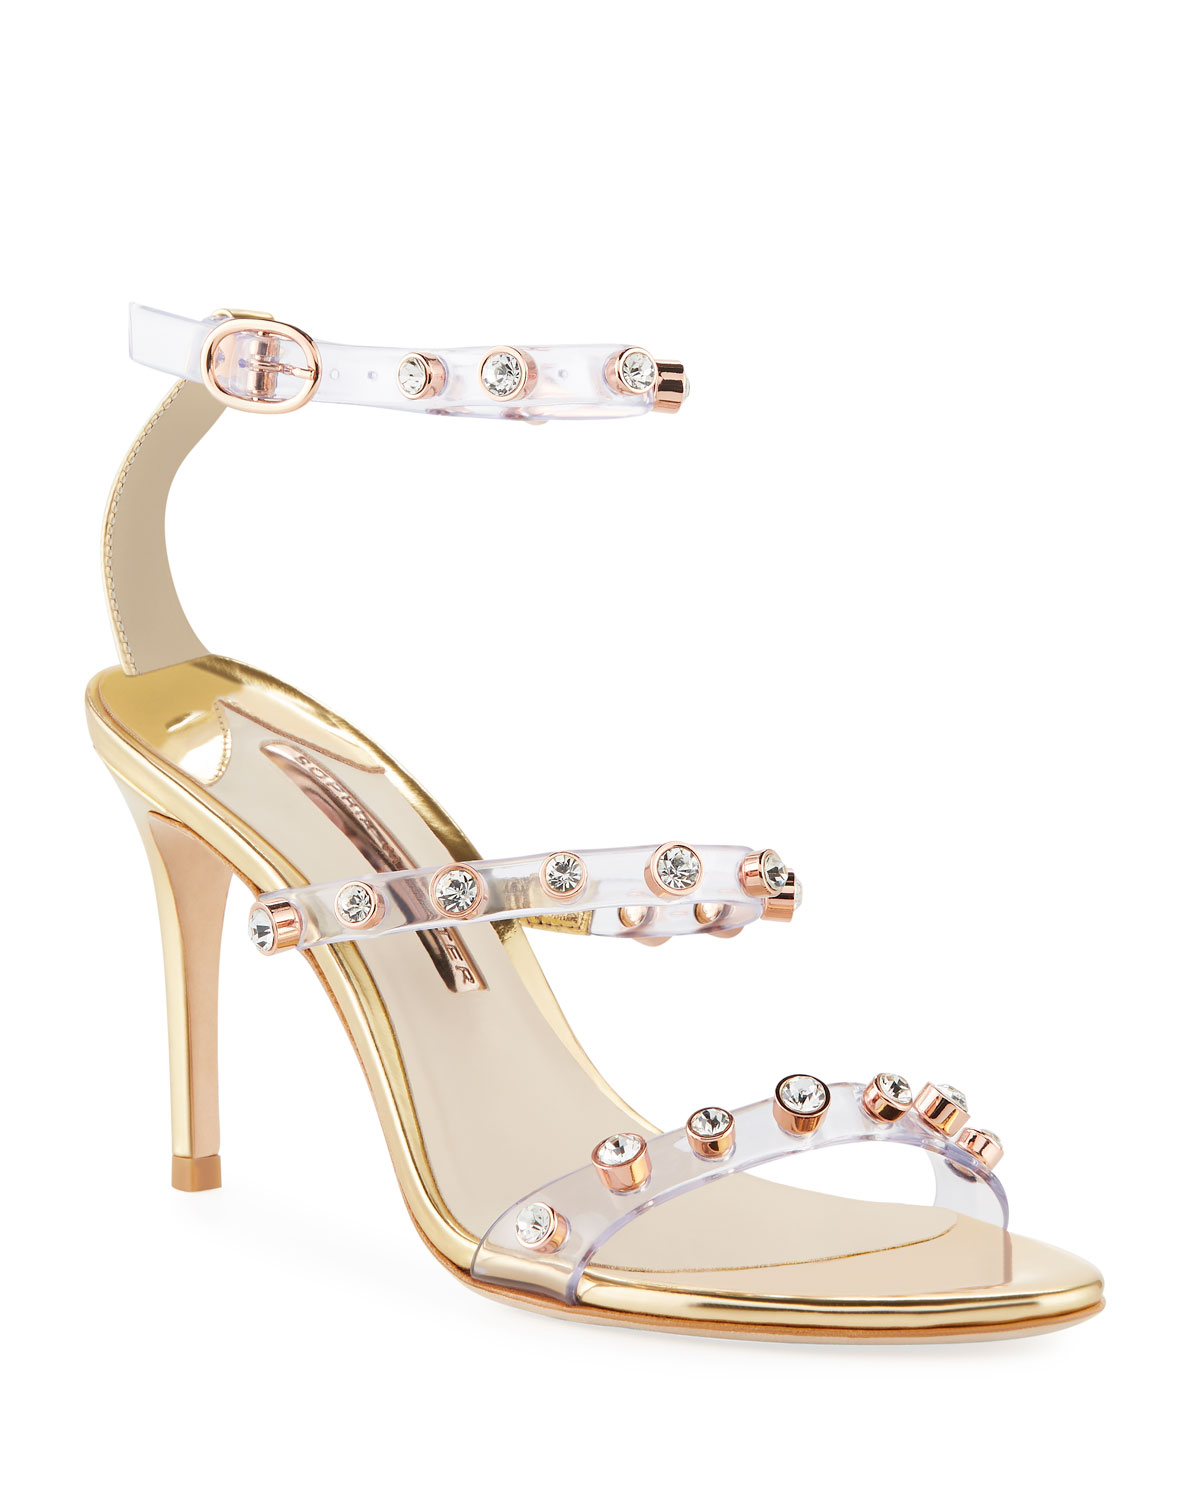 Rosalind Gem-Stud Mid-Heel See-Through Vinyl & Leather Sandals in Gold/Silver